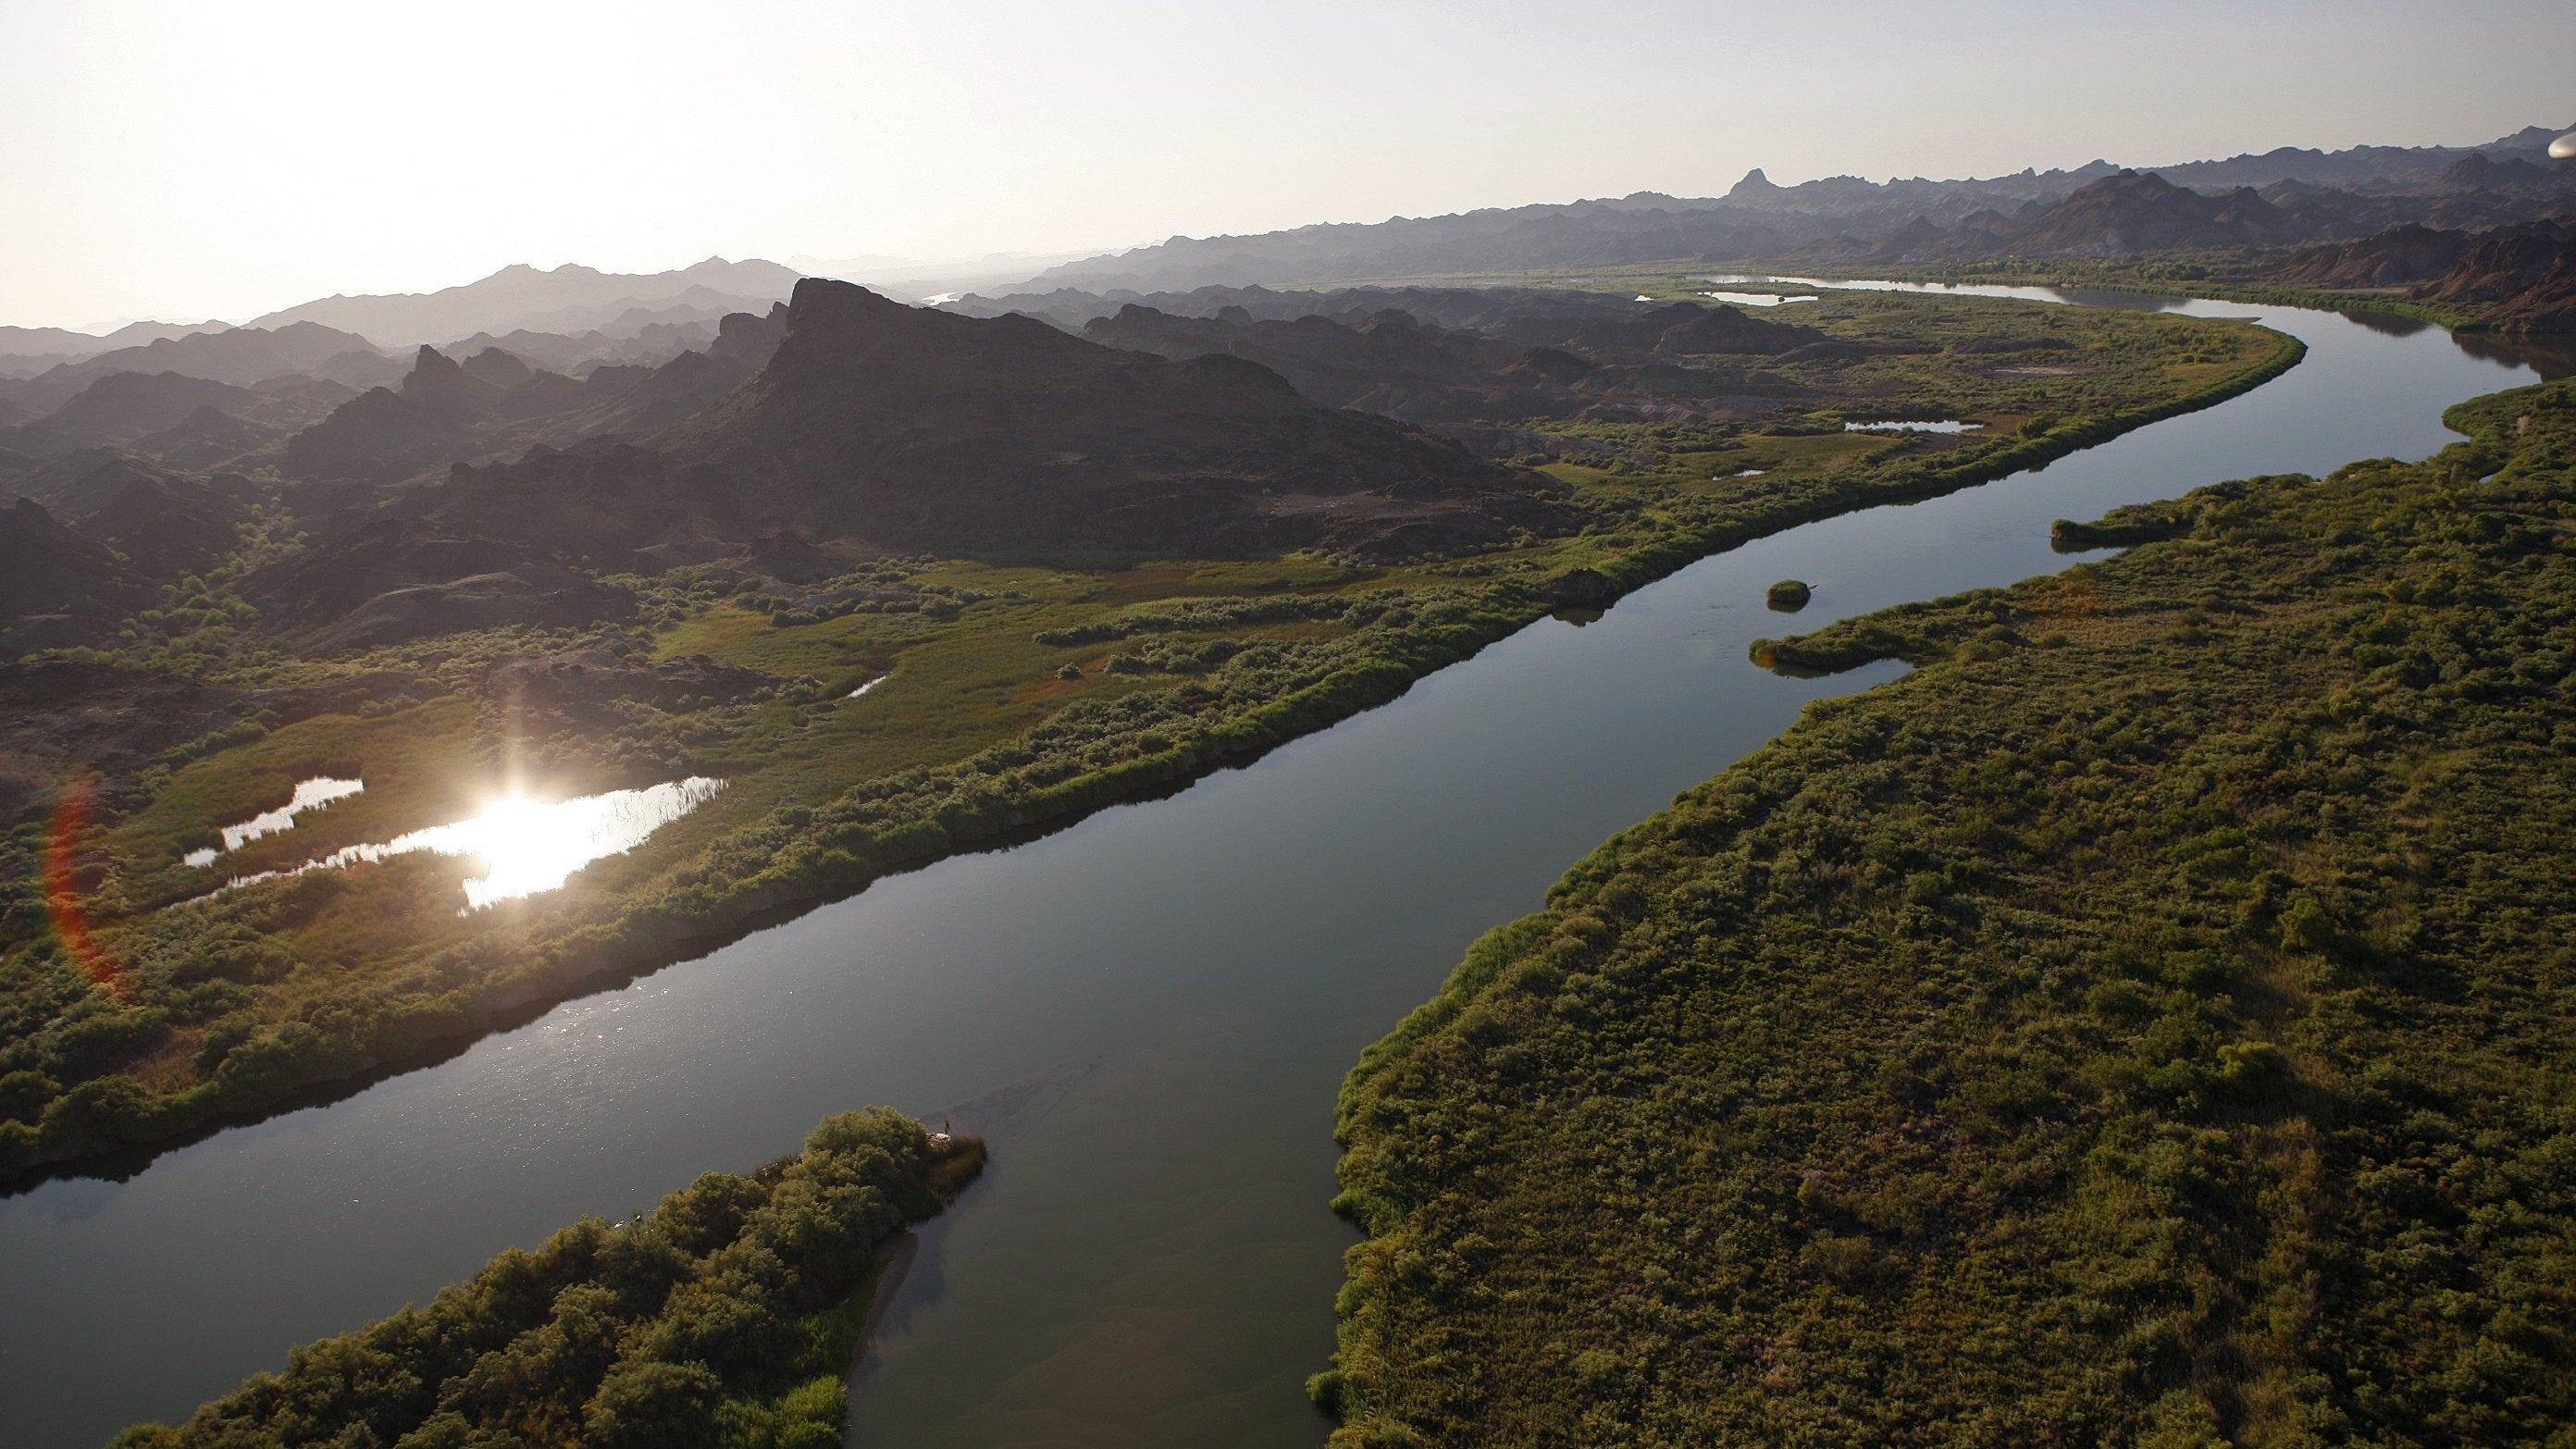 Earth Has Many More Rivers And Streams Than We Thought, New Satellite Study Finds